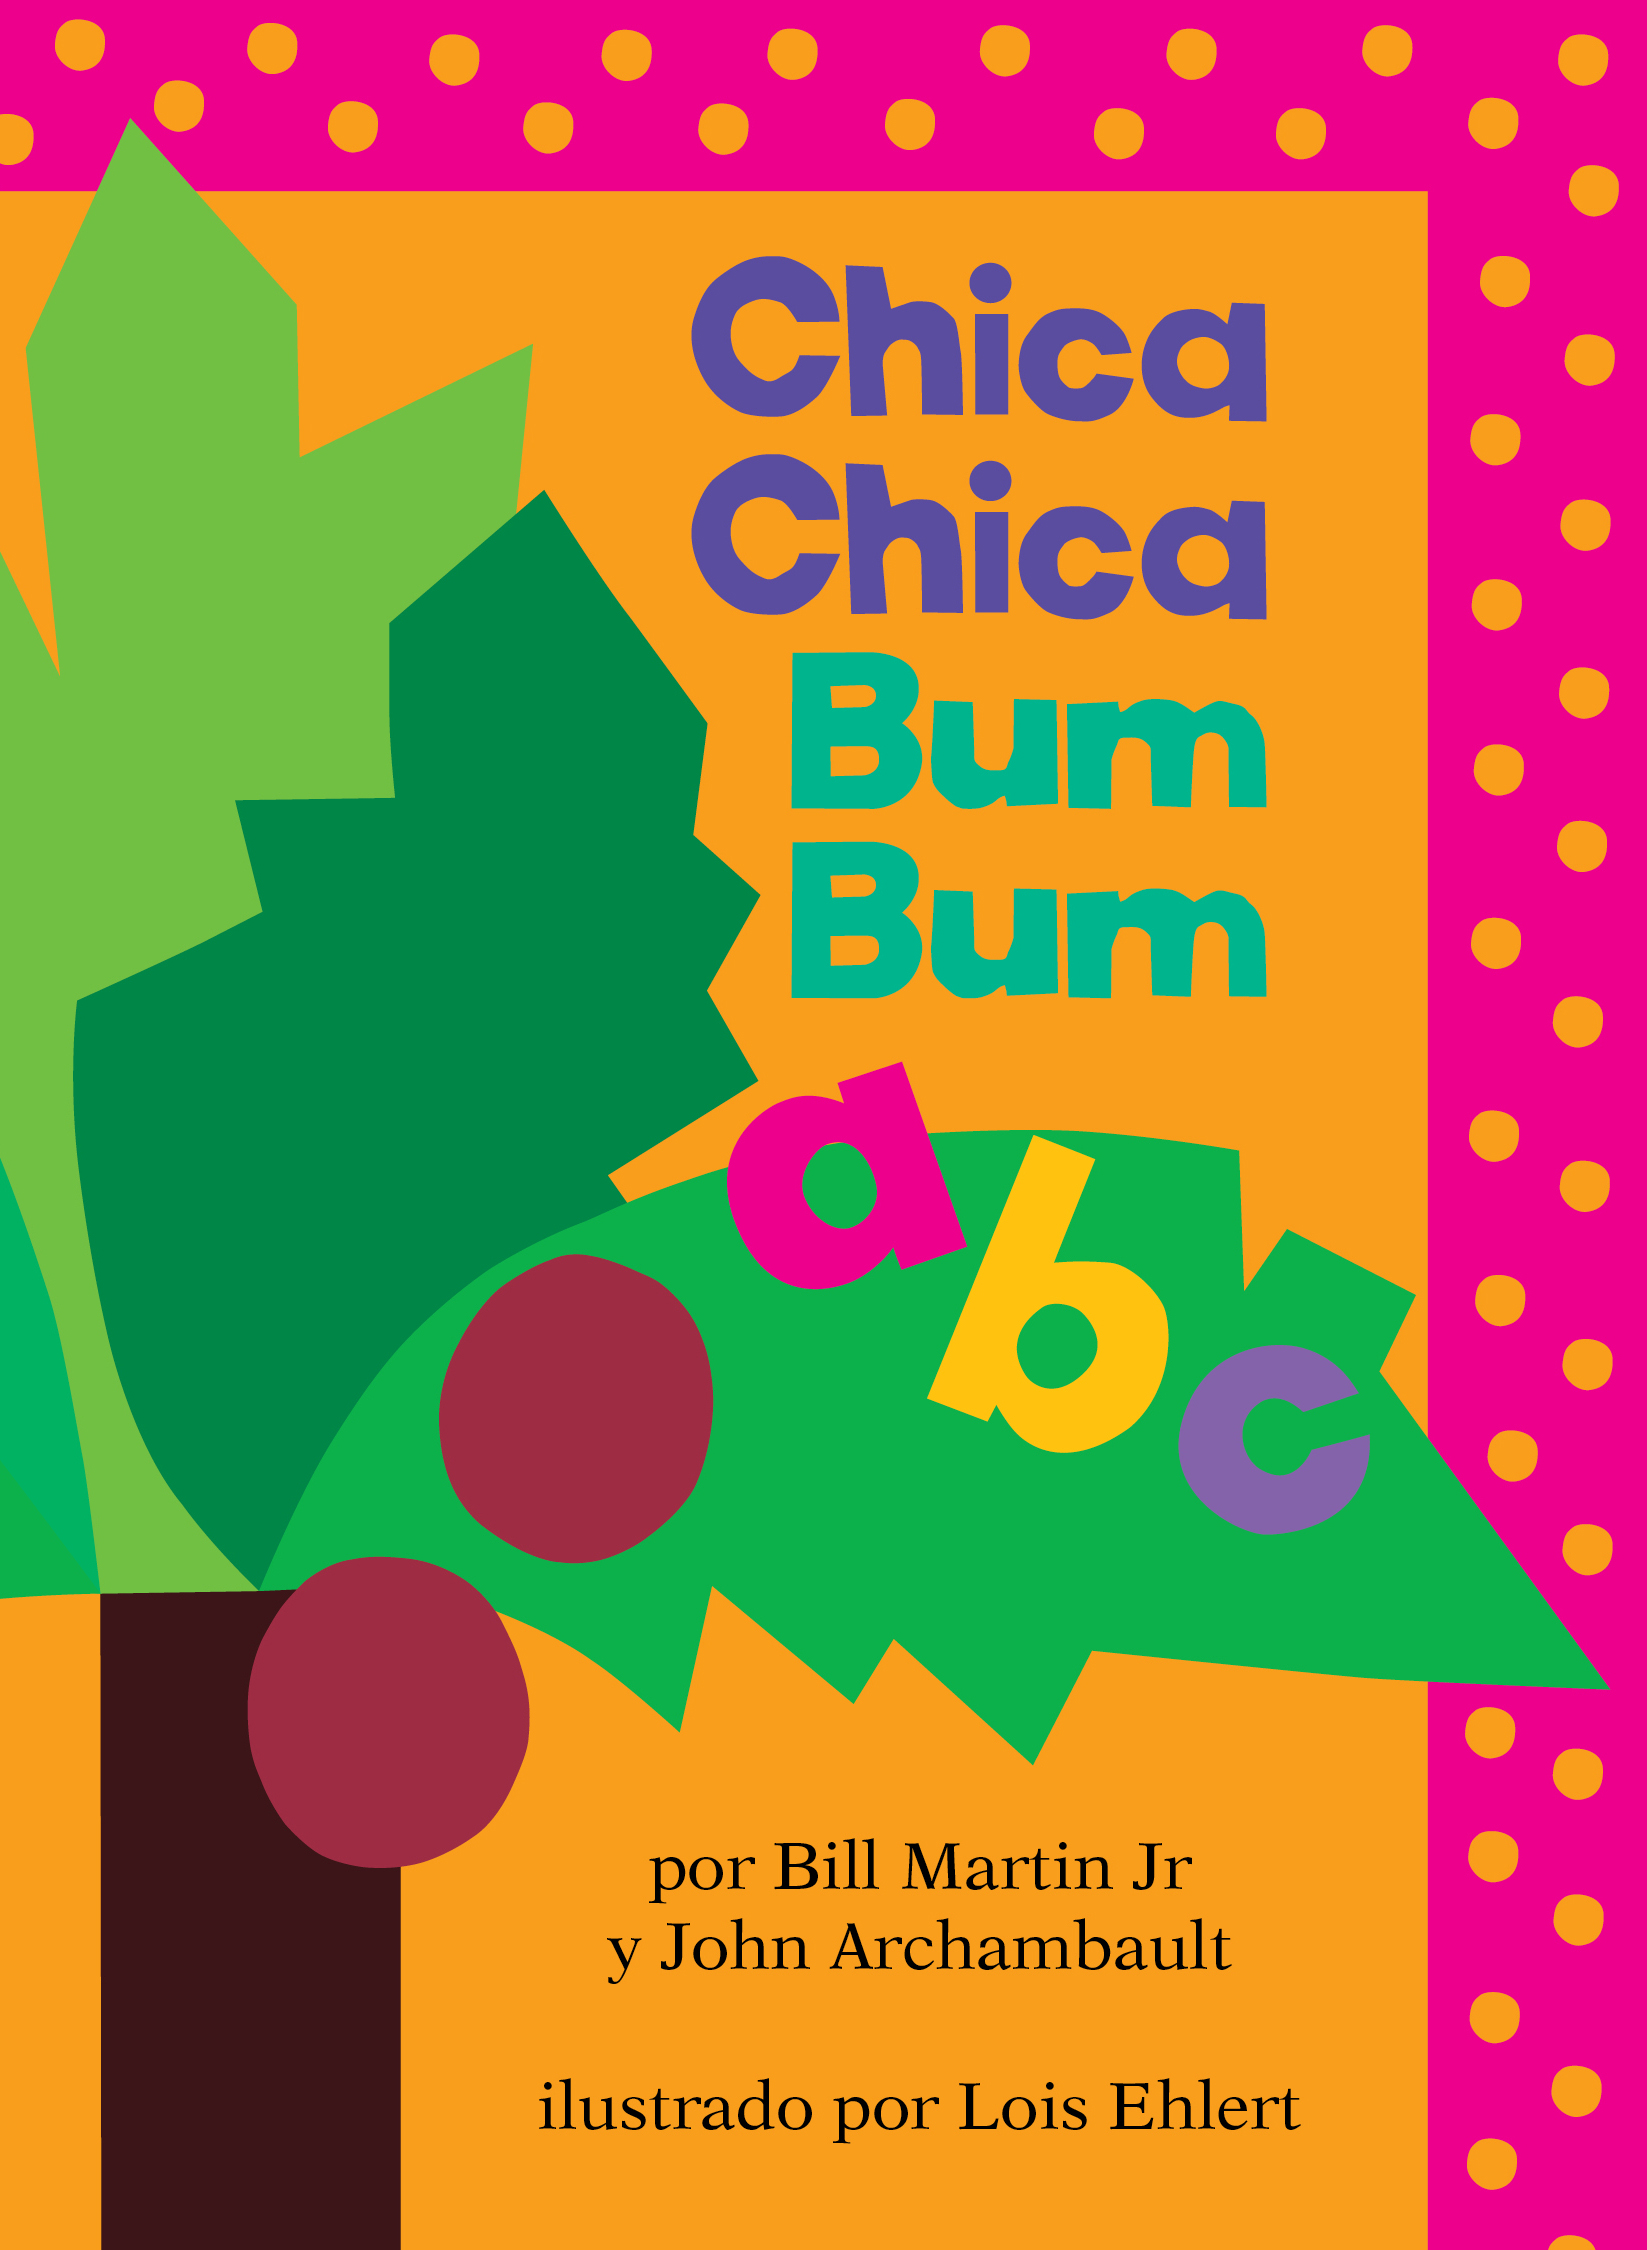 Chica Chica Bum Bum ABC (Chicka Chicka ABC) | Book by Bill ... - photo#10